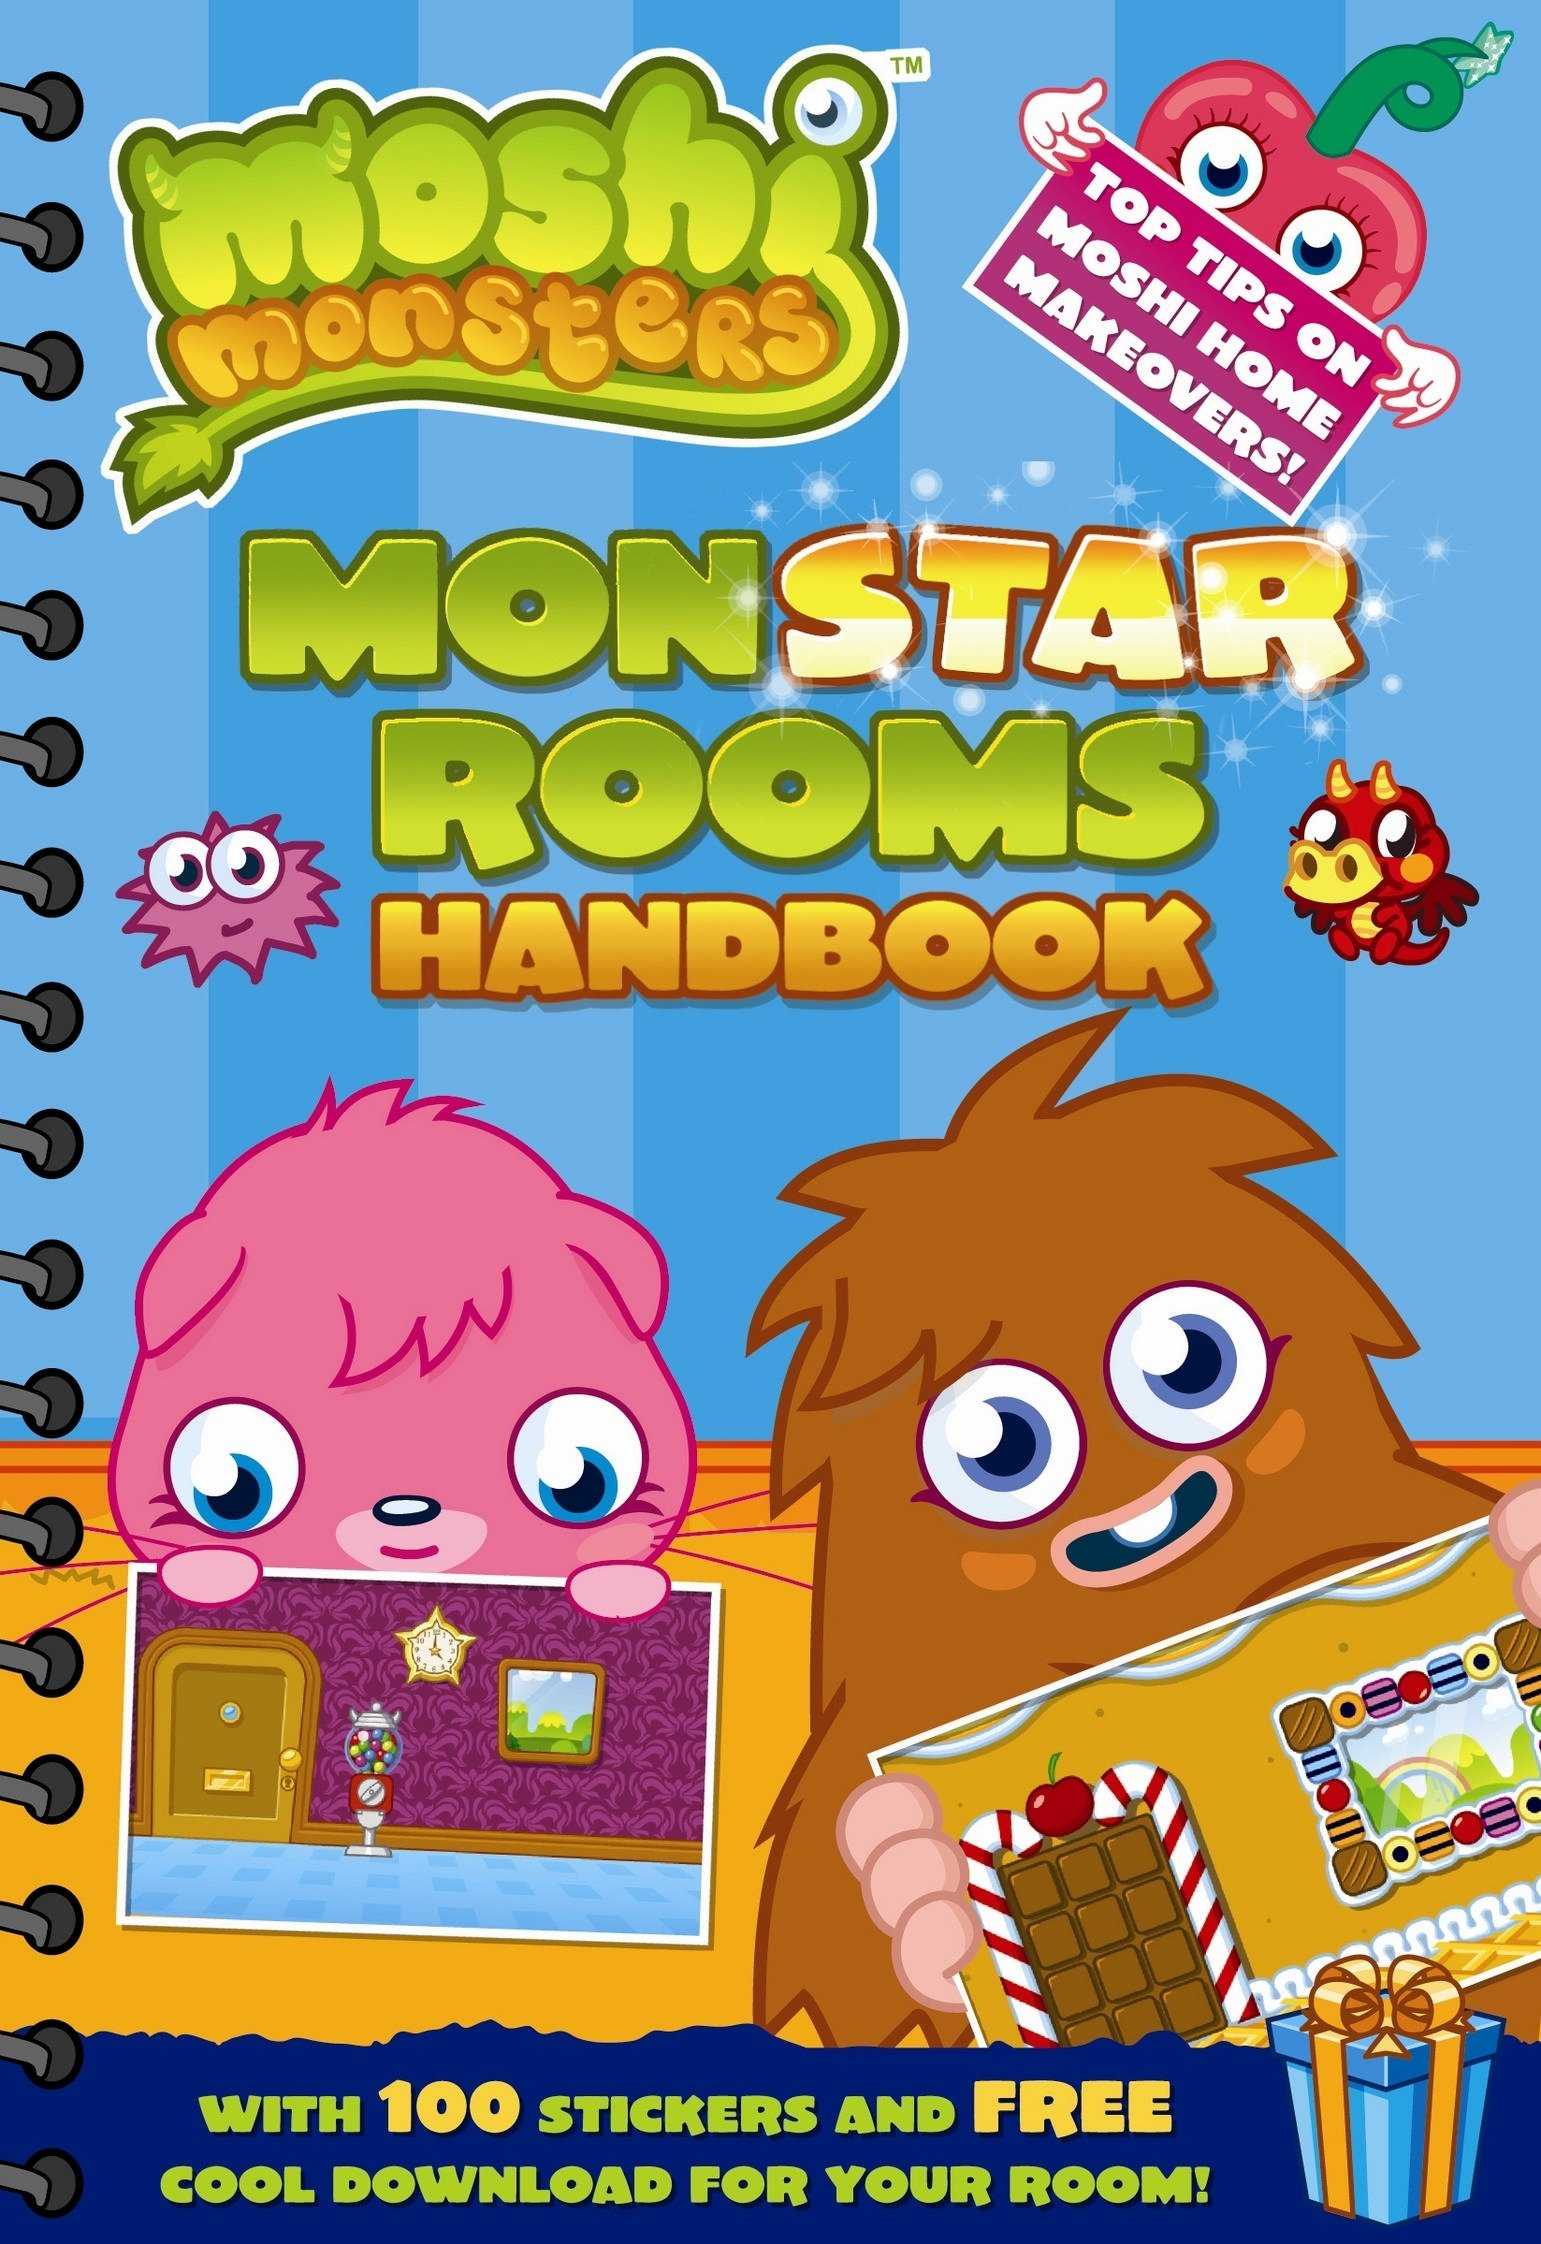 Moshi Monsters Monstar Rooms Handbook Sunbird 9781409390435 Amazon Com Books